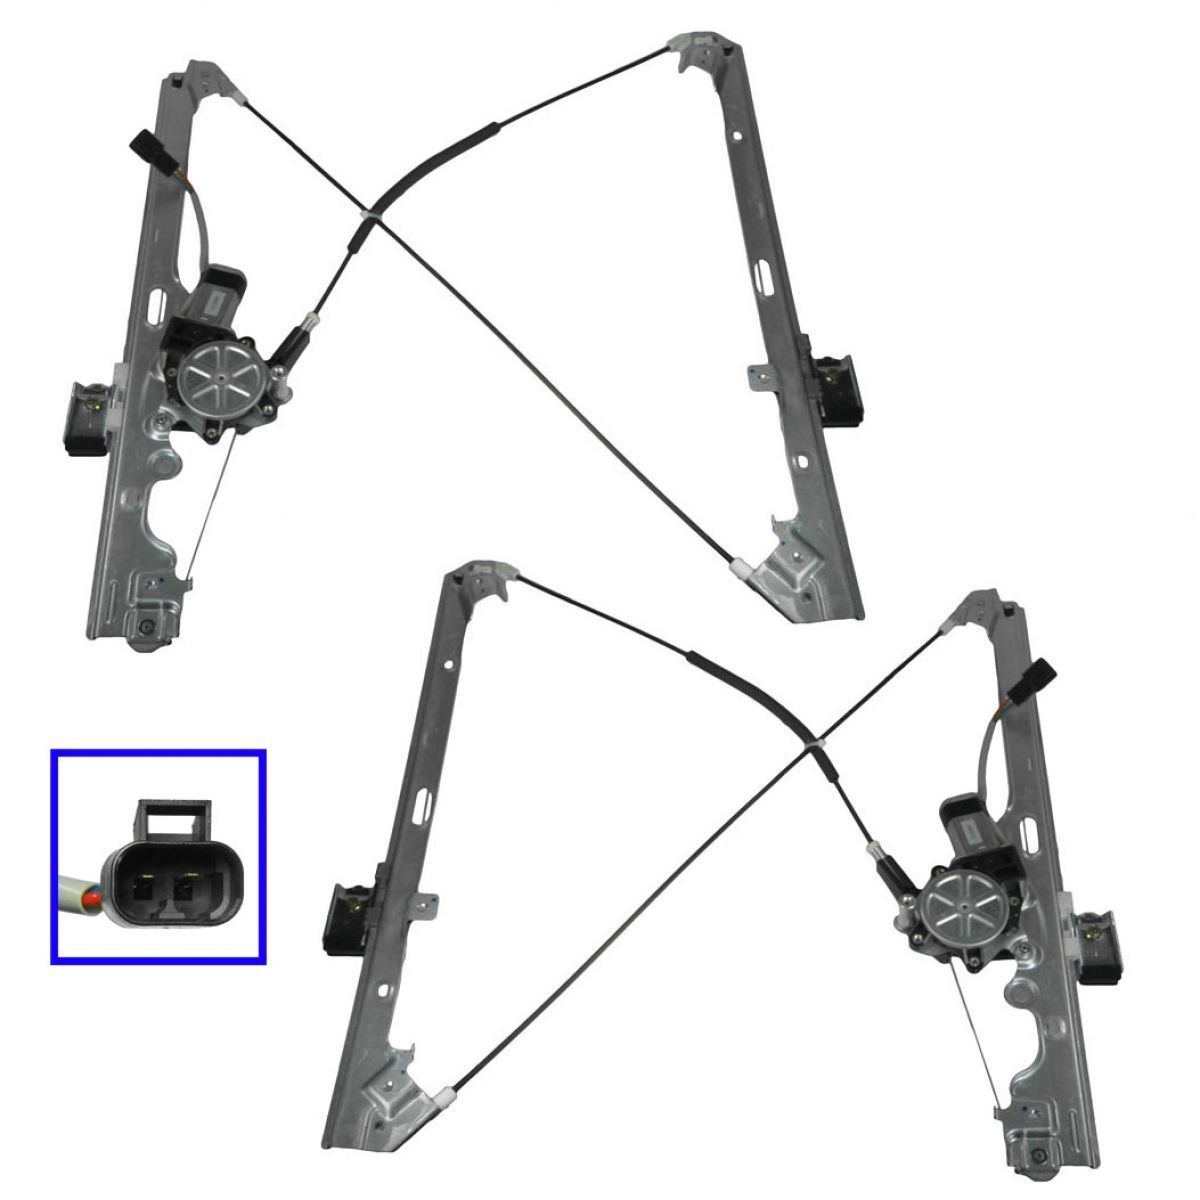 Chevy Silverado Window Regulator At Monster Auto Parts